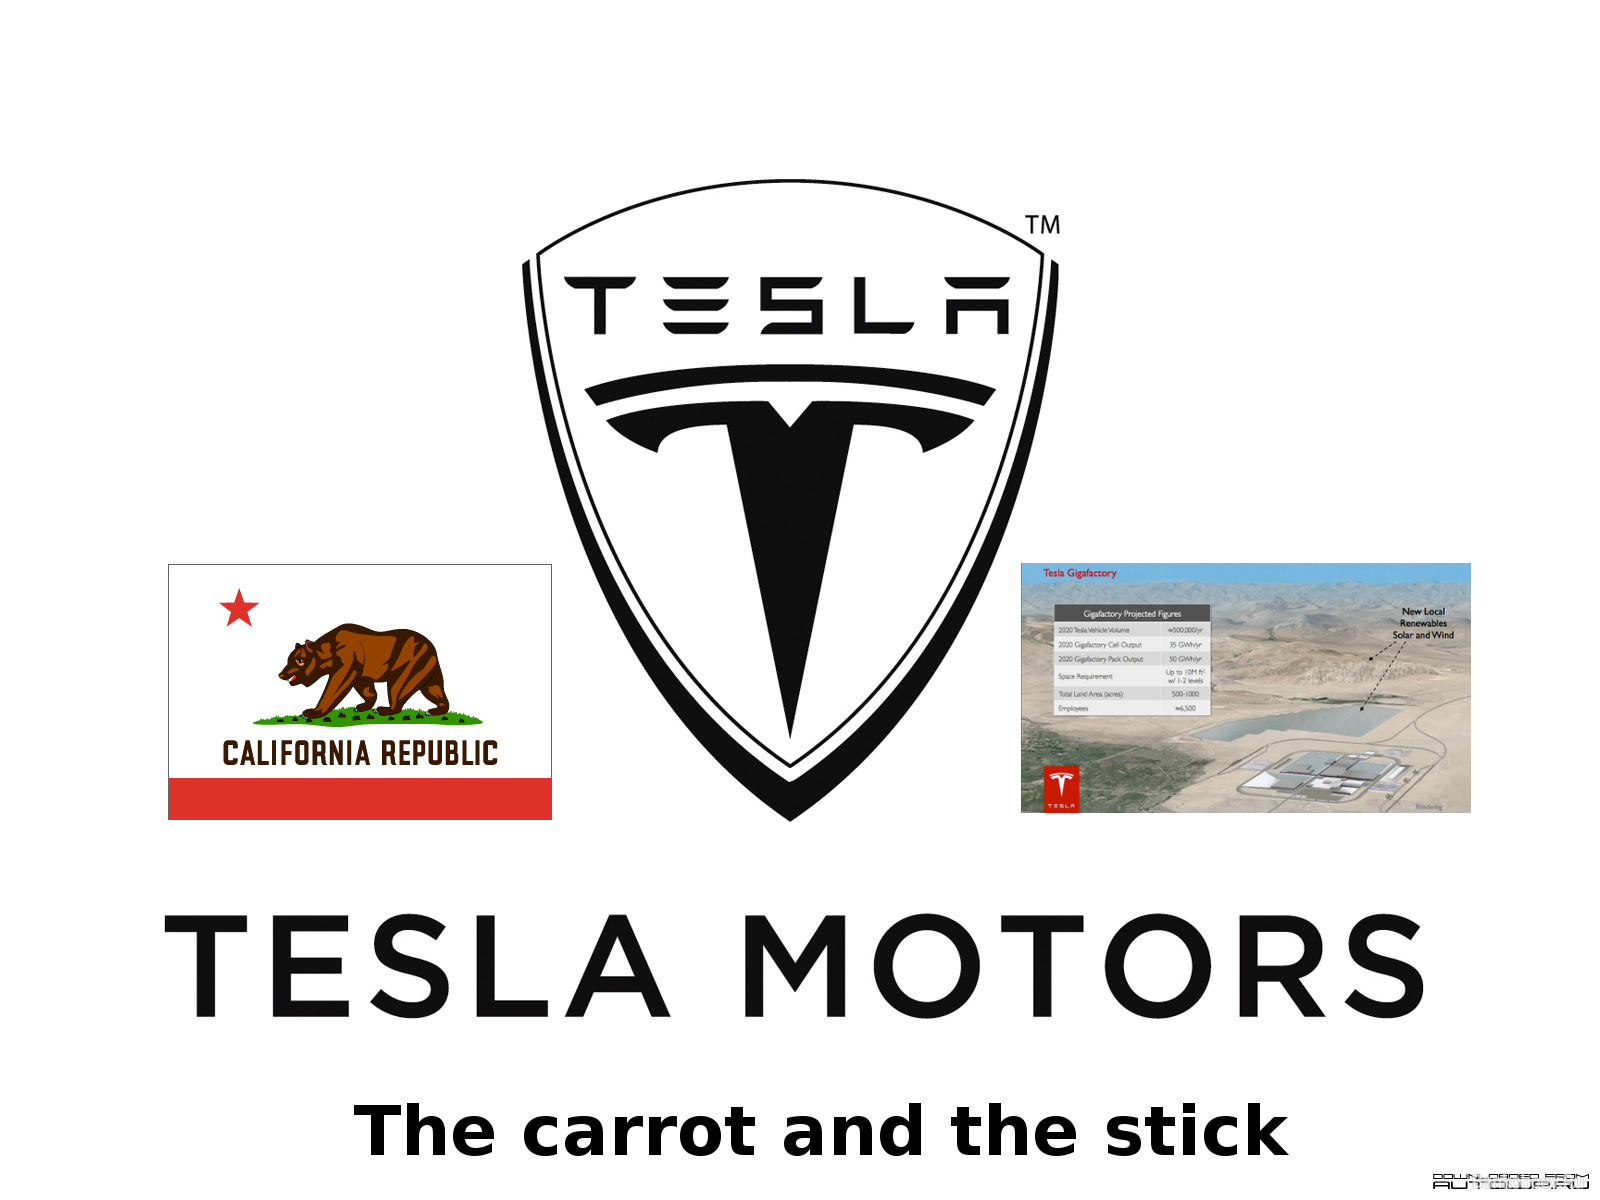 Tesla environmental policy